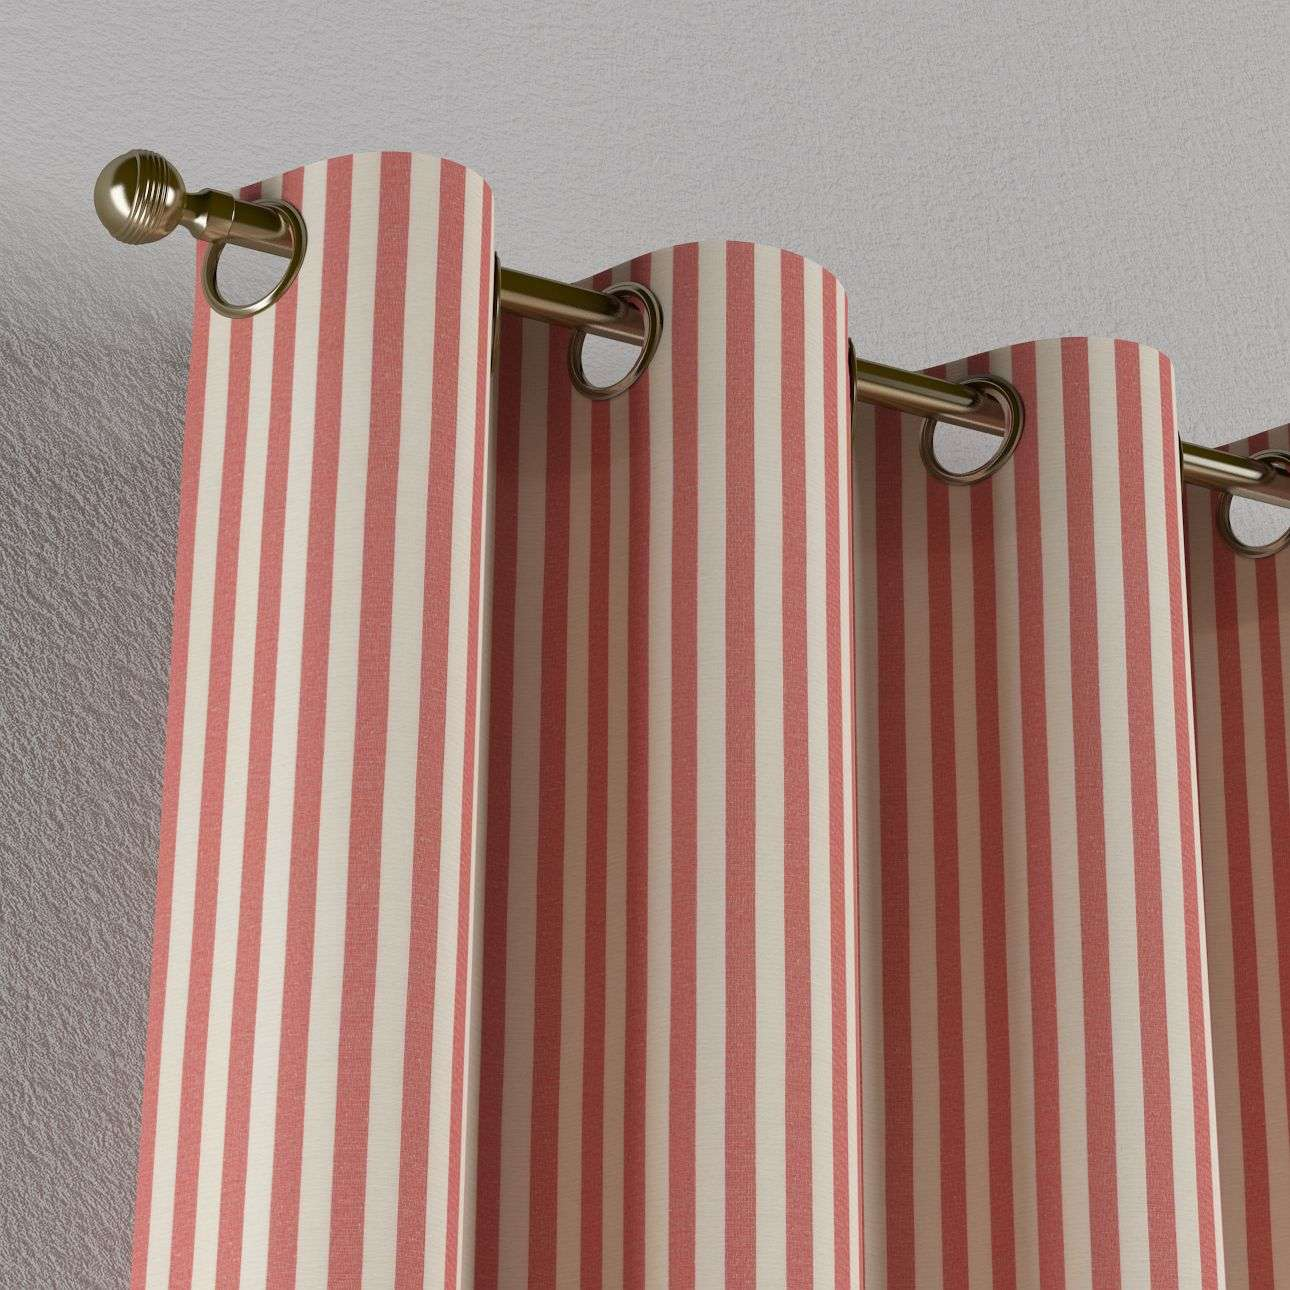 Eyelet curtains 130 x 260 cm (51 x 102 inch) in collection Quadro, fabric: 136-17